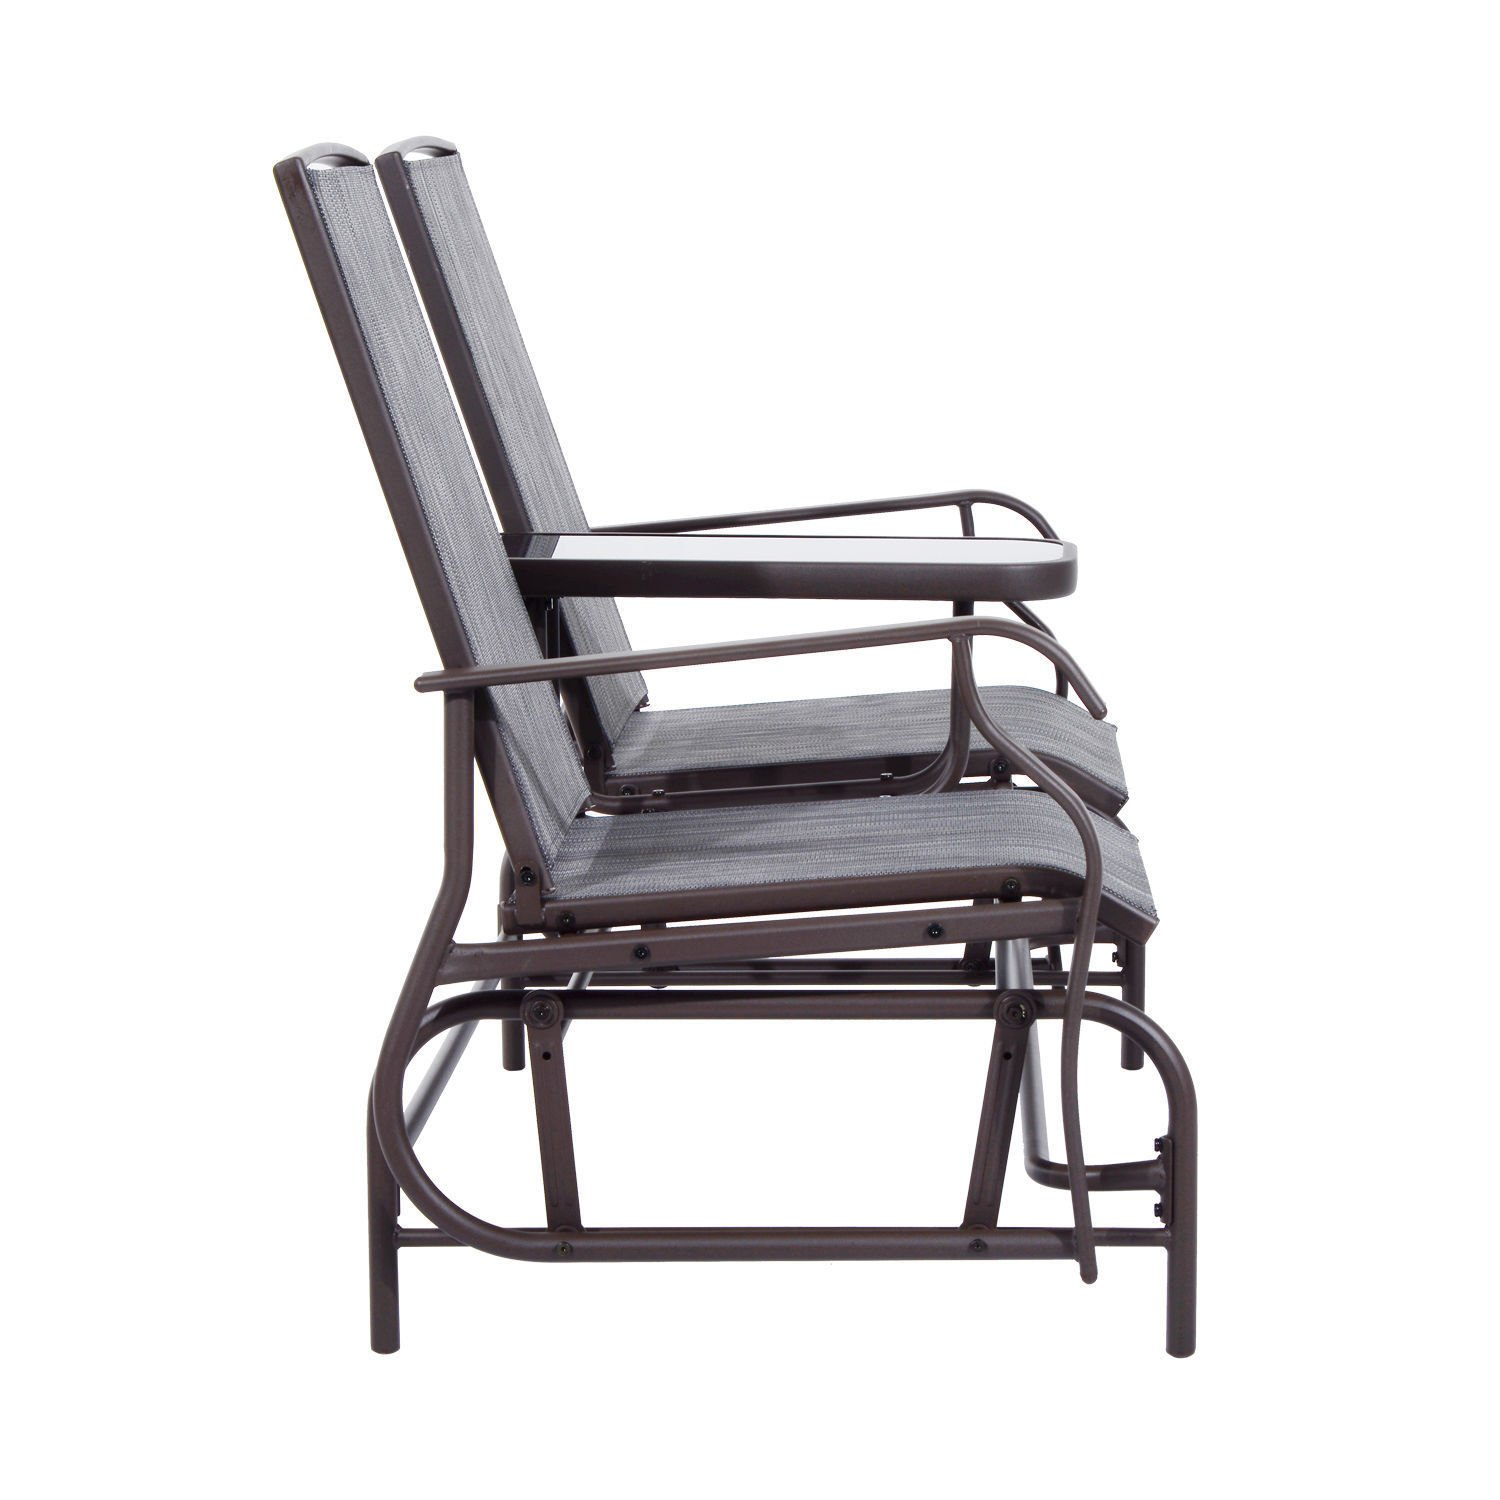 Heavens Tvcz Patio Glider Loveseat 2 Rocking Chair Bench Garden Porch Person Rocker Seat Armchair Deck Backyard New Metal Outdoor Furniture for a Double Fun Day in The Sun.